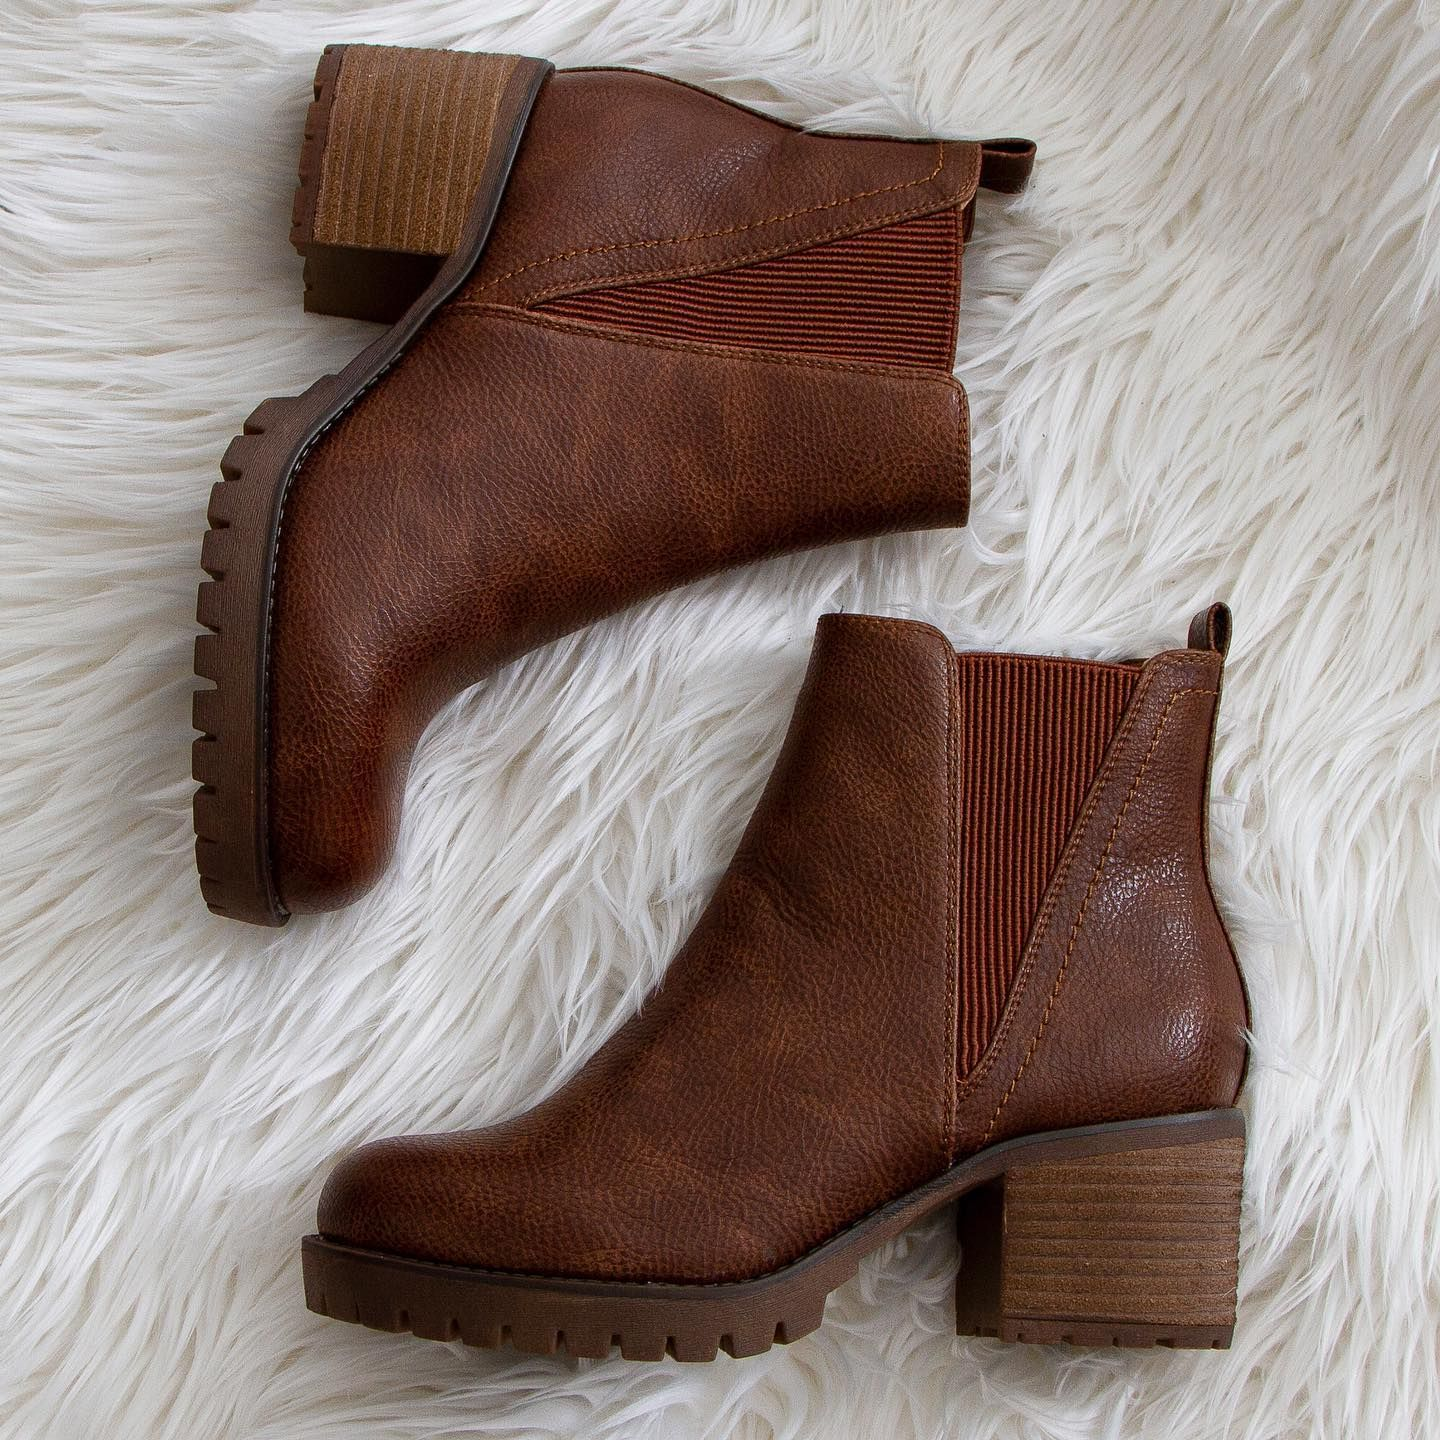 Mia Shoes Jody Booties in Luggage Brown